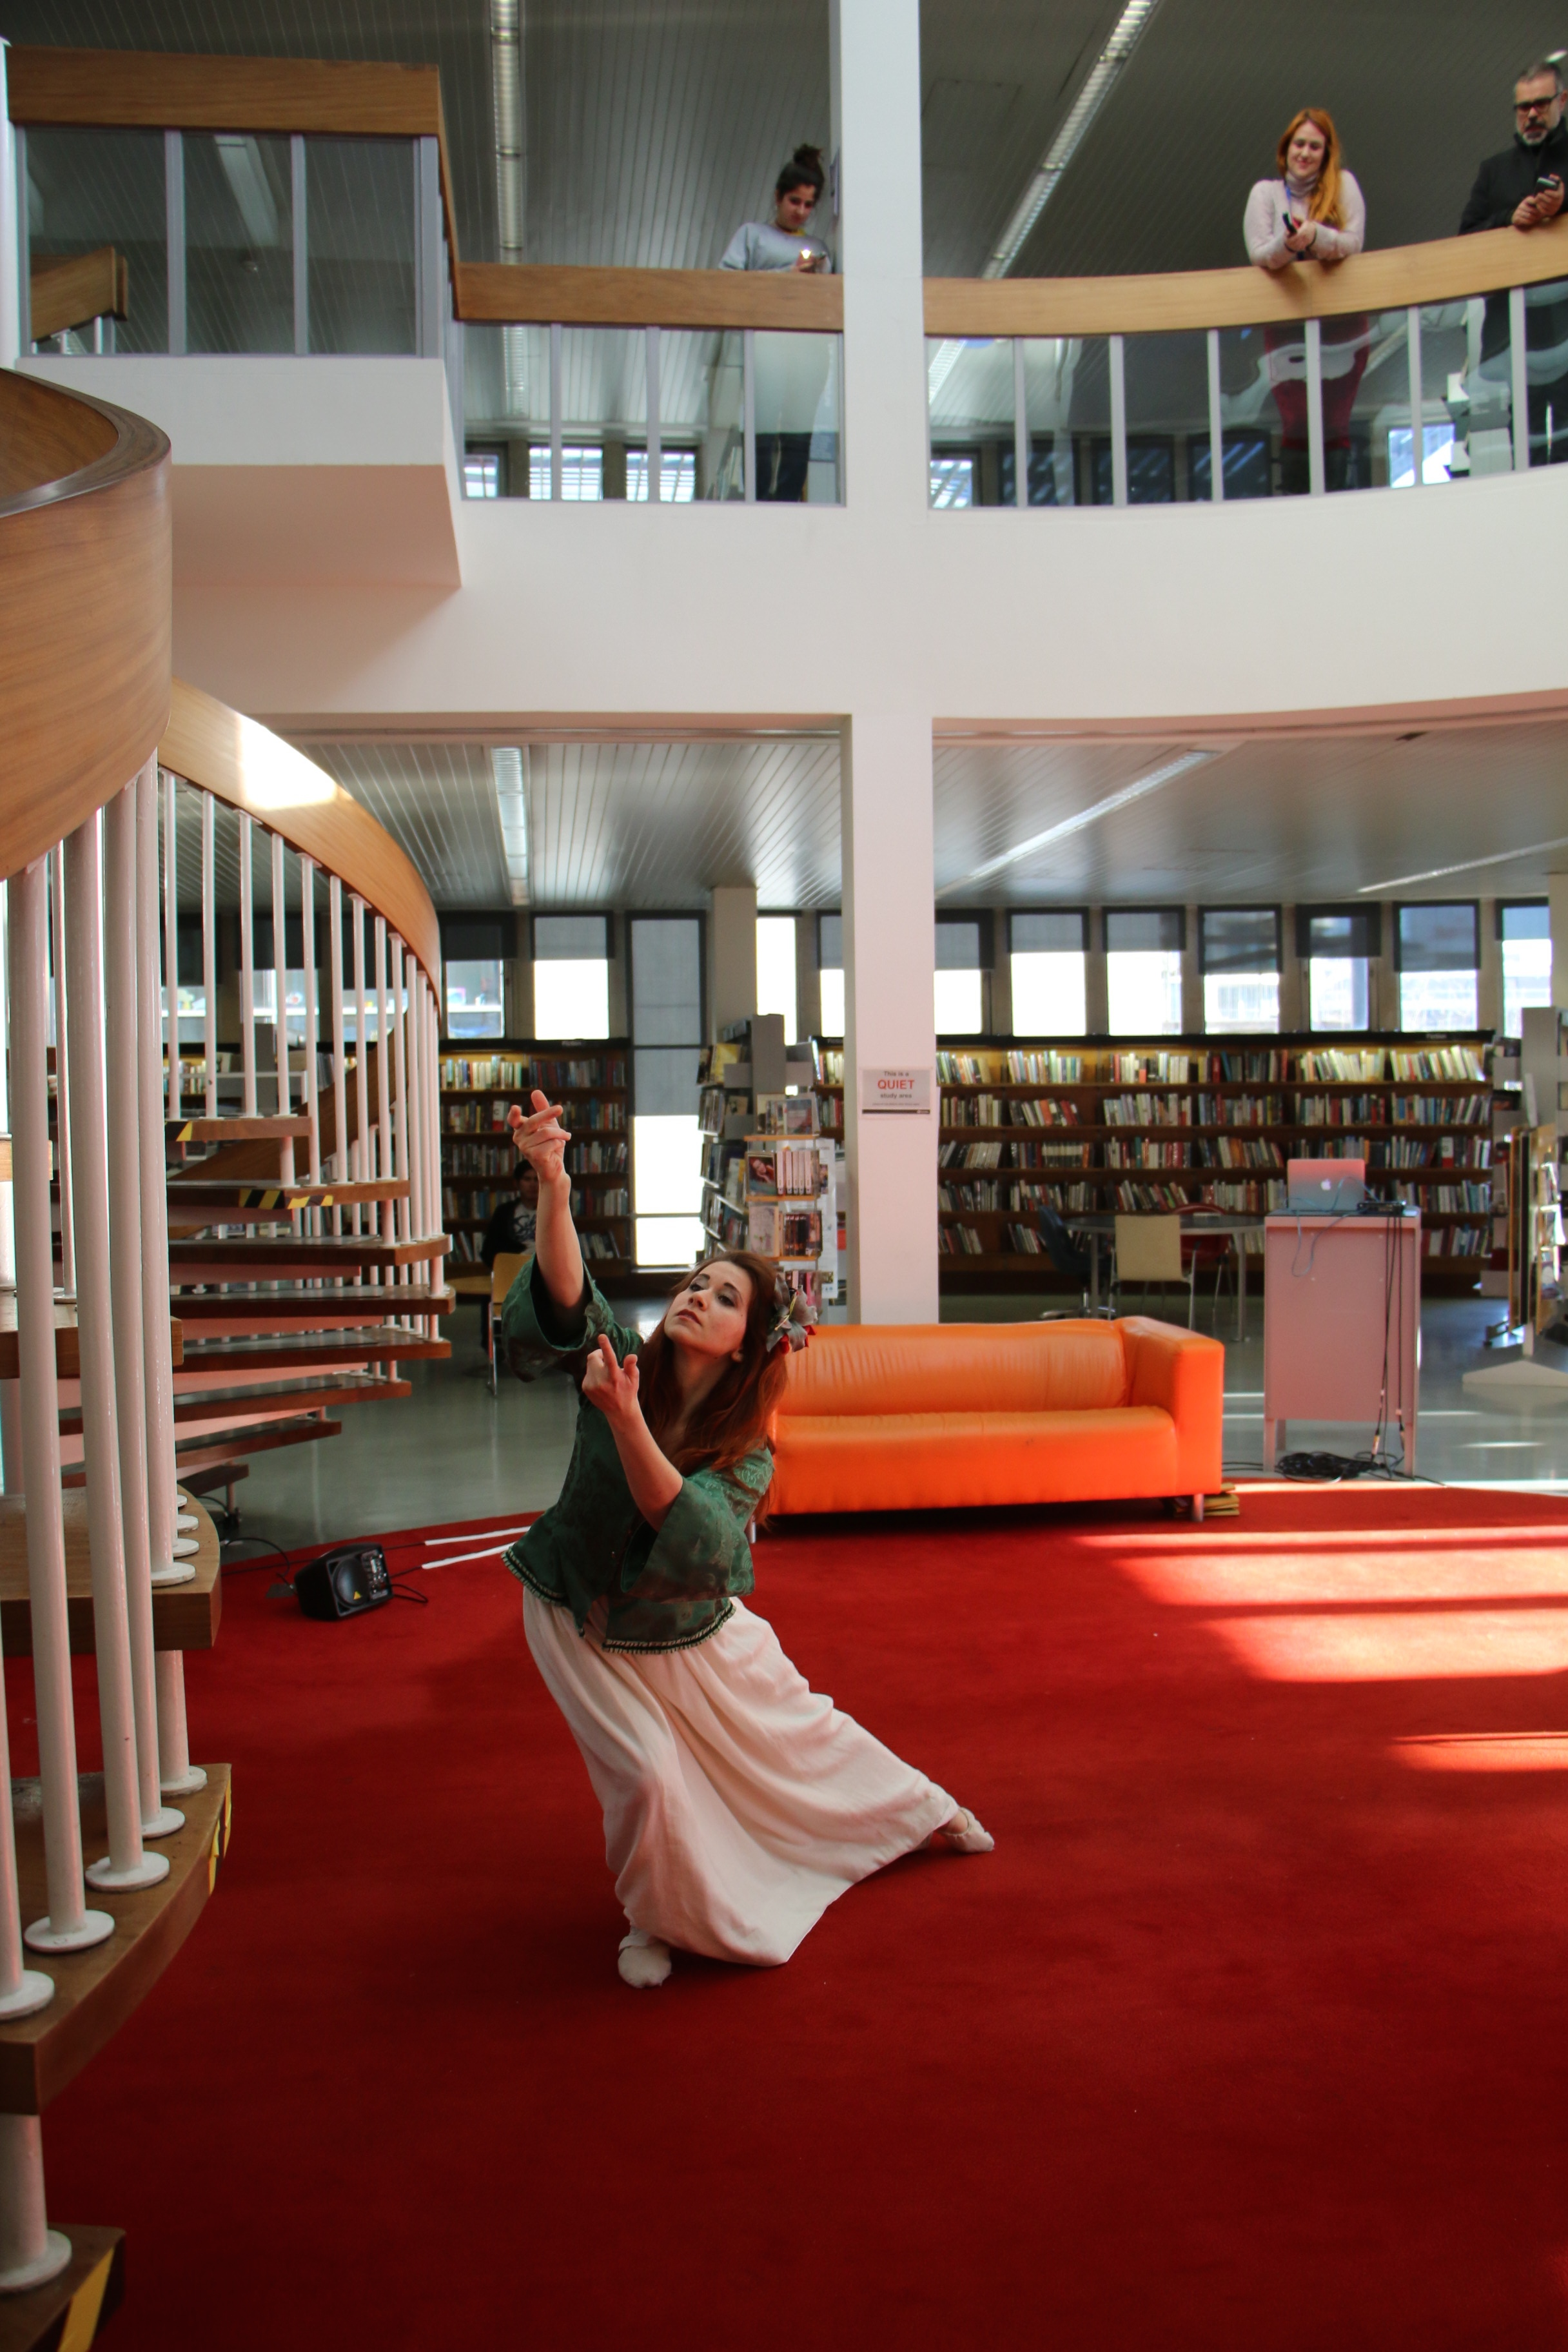 performer dances in a library while audience members watch